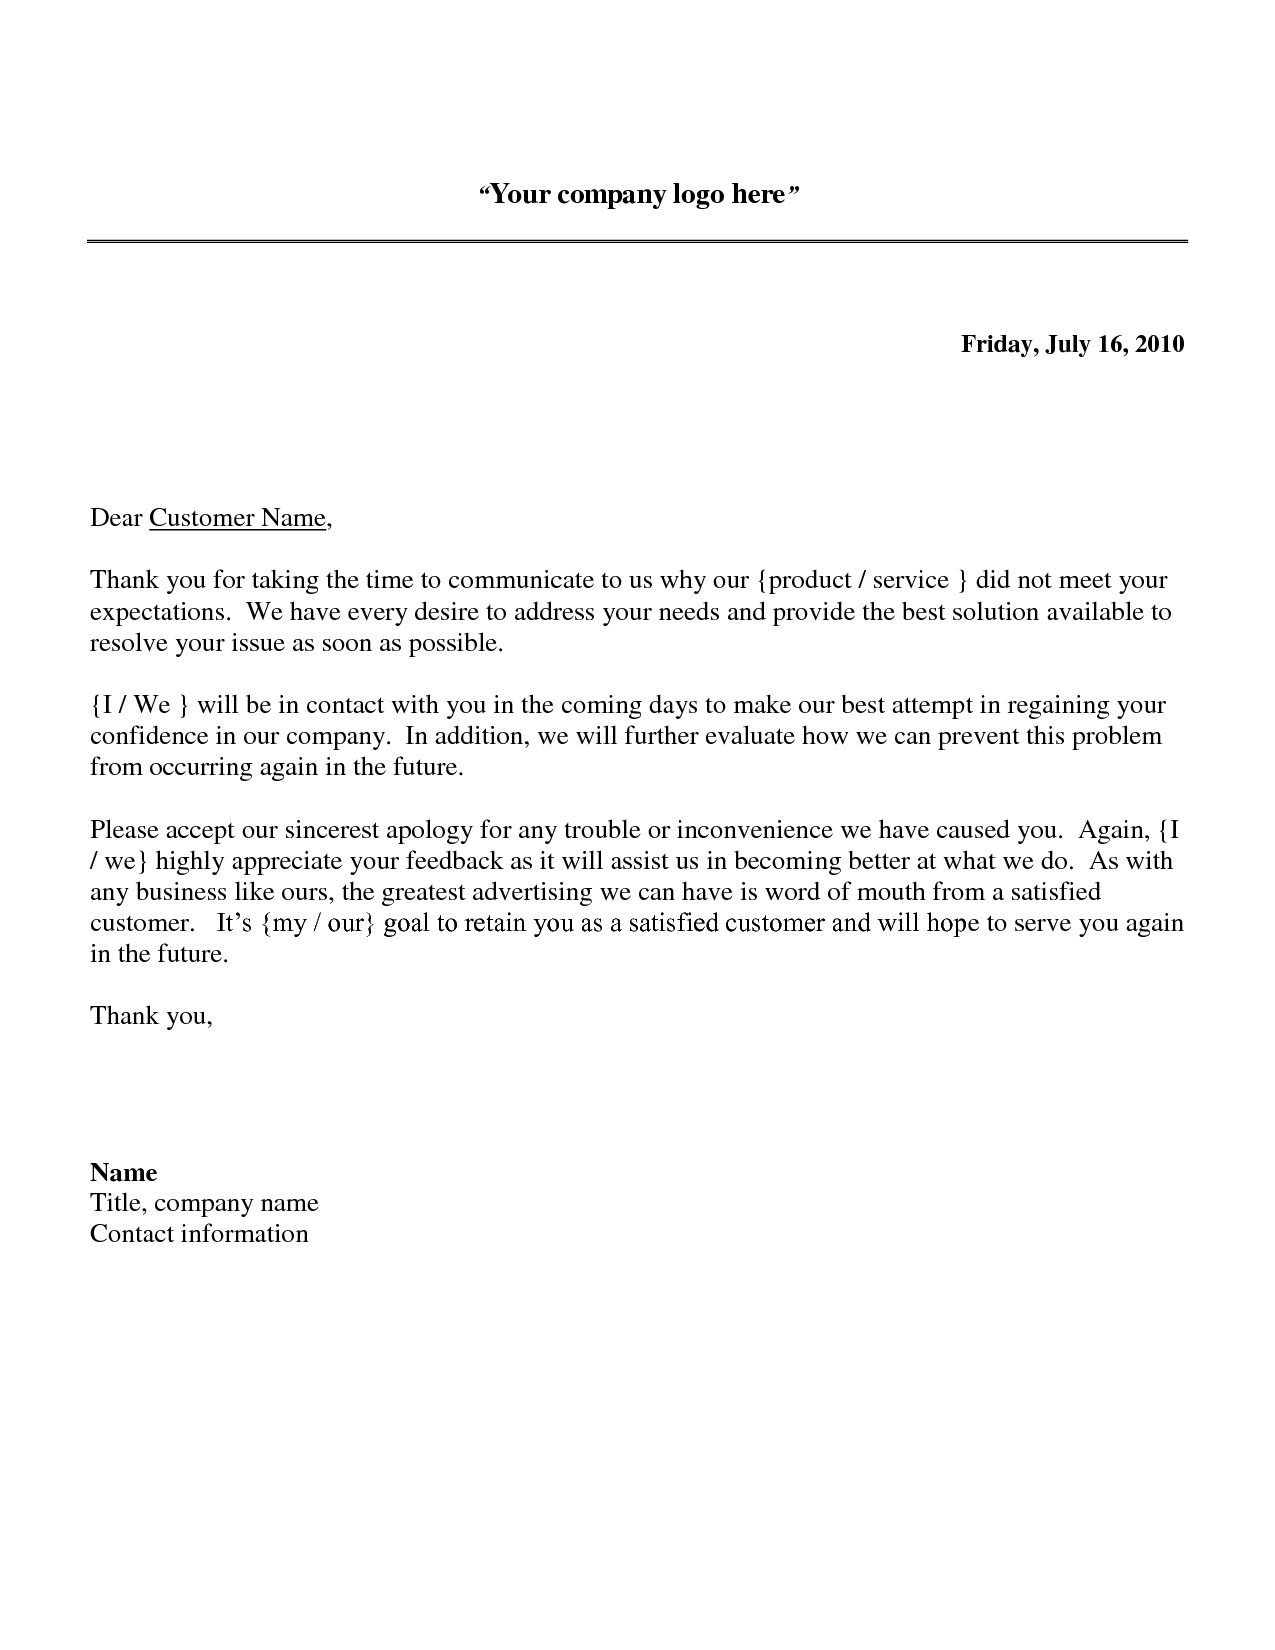 Cover Letter Template Word Customer Service